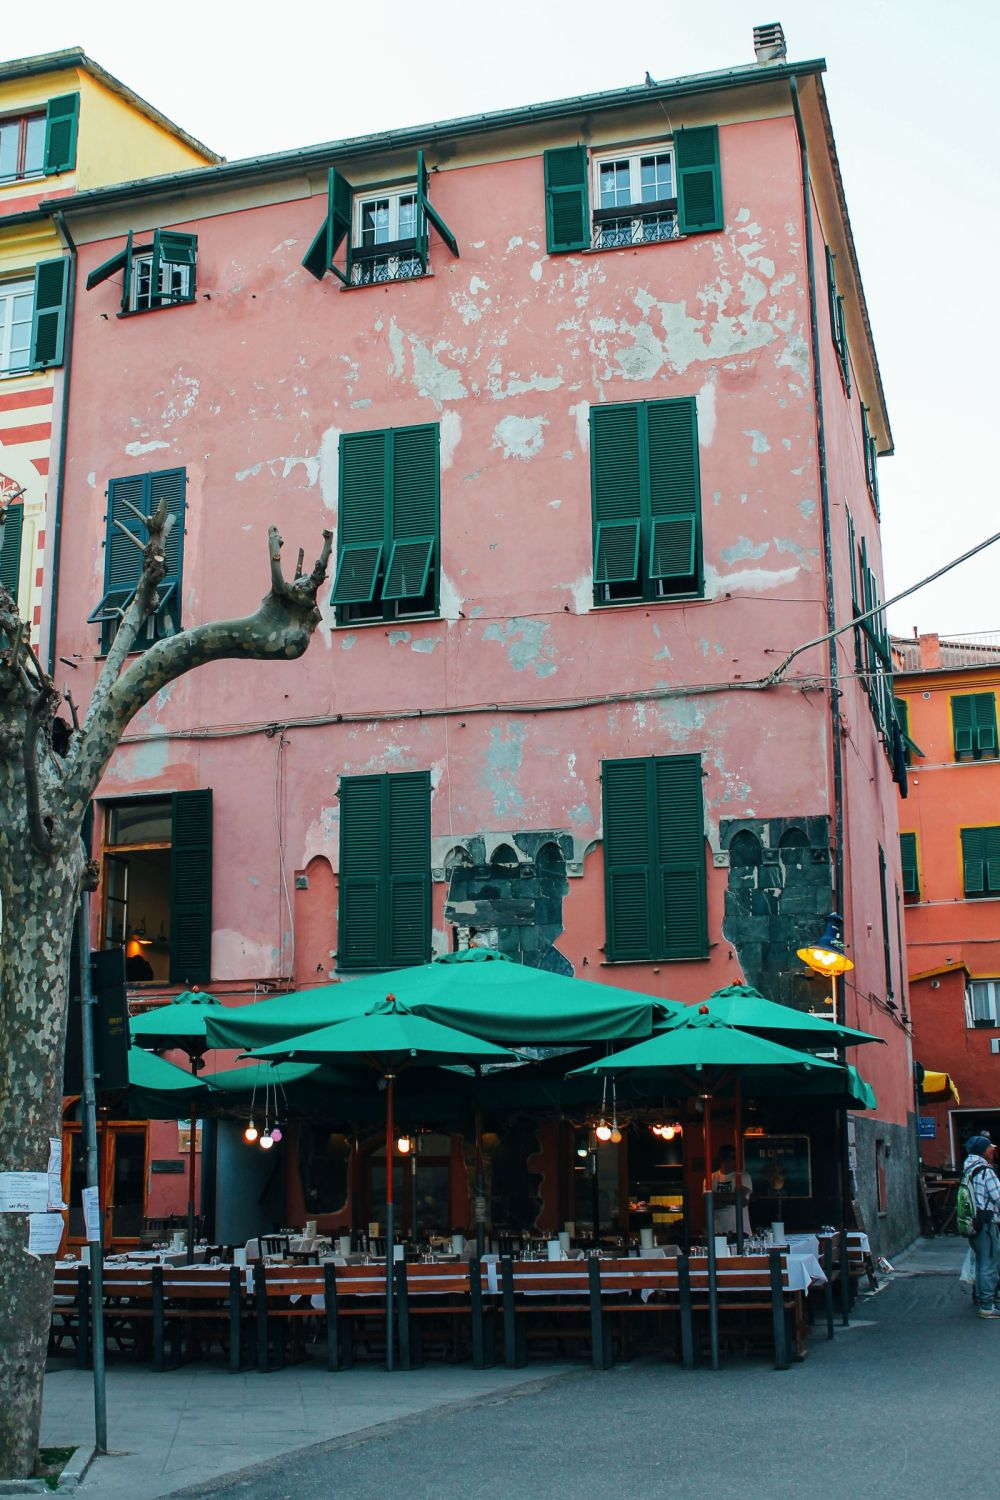 Monterosso al Mare in Cinque Terre, Italy - The Photo Diary! [5 of 5] (5)